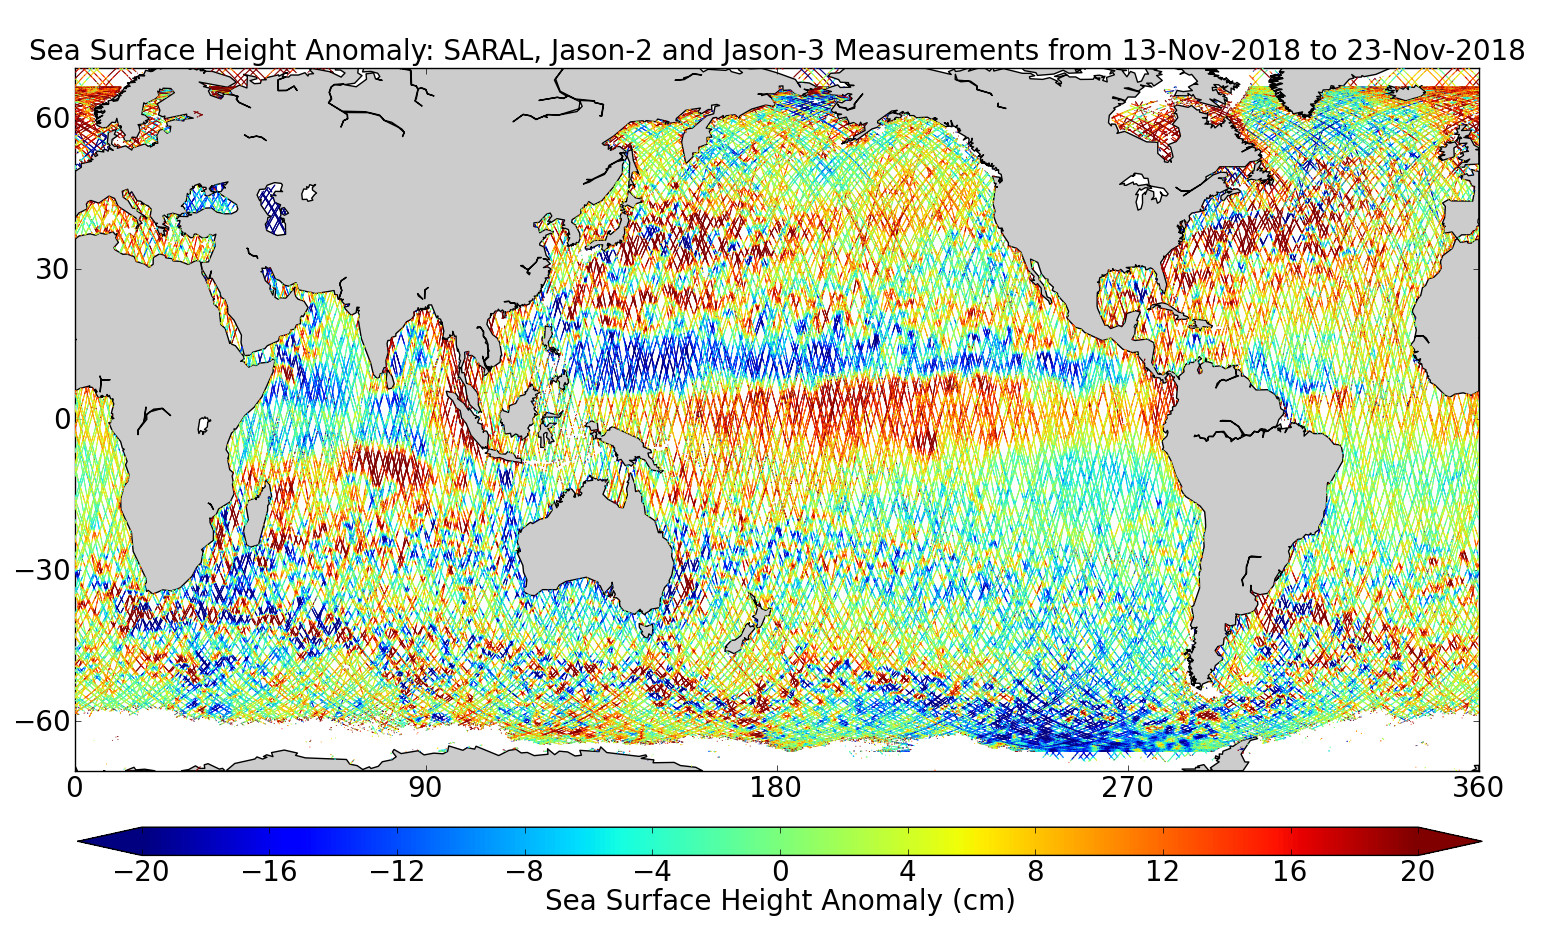 Sea Surface Height Anomaly: SARAL, Jason-2 and Jason-3 Measurements from 13-Nov-2018 to 23-Nov-2018